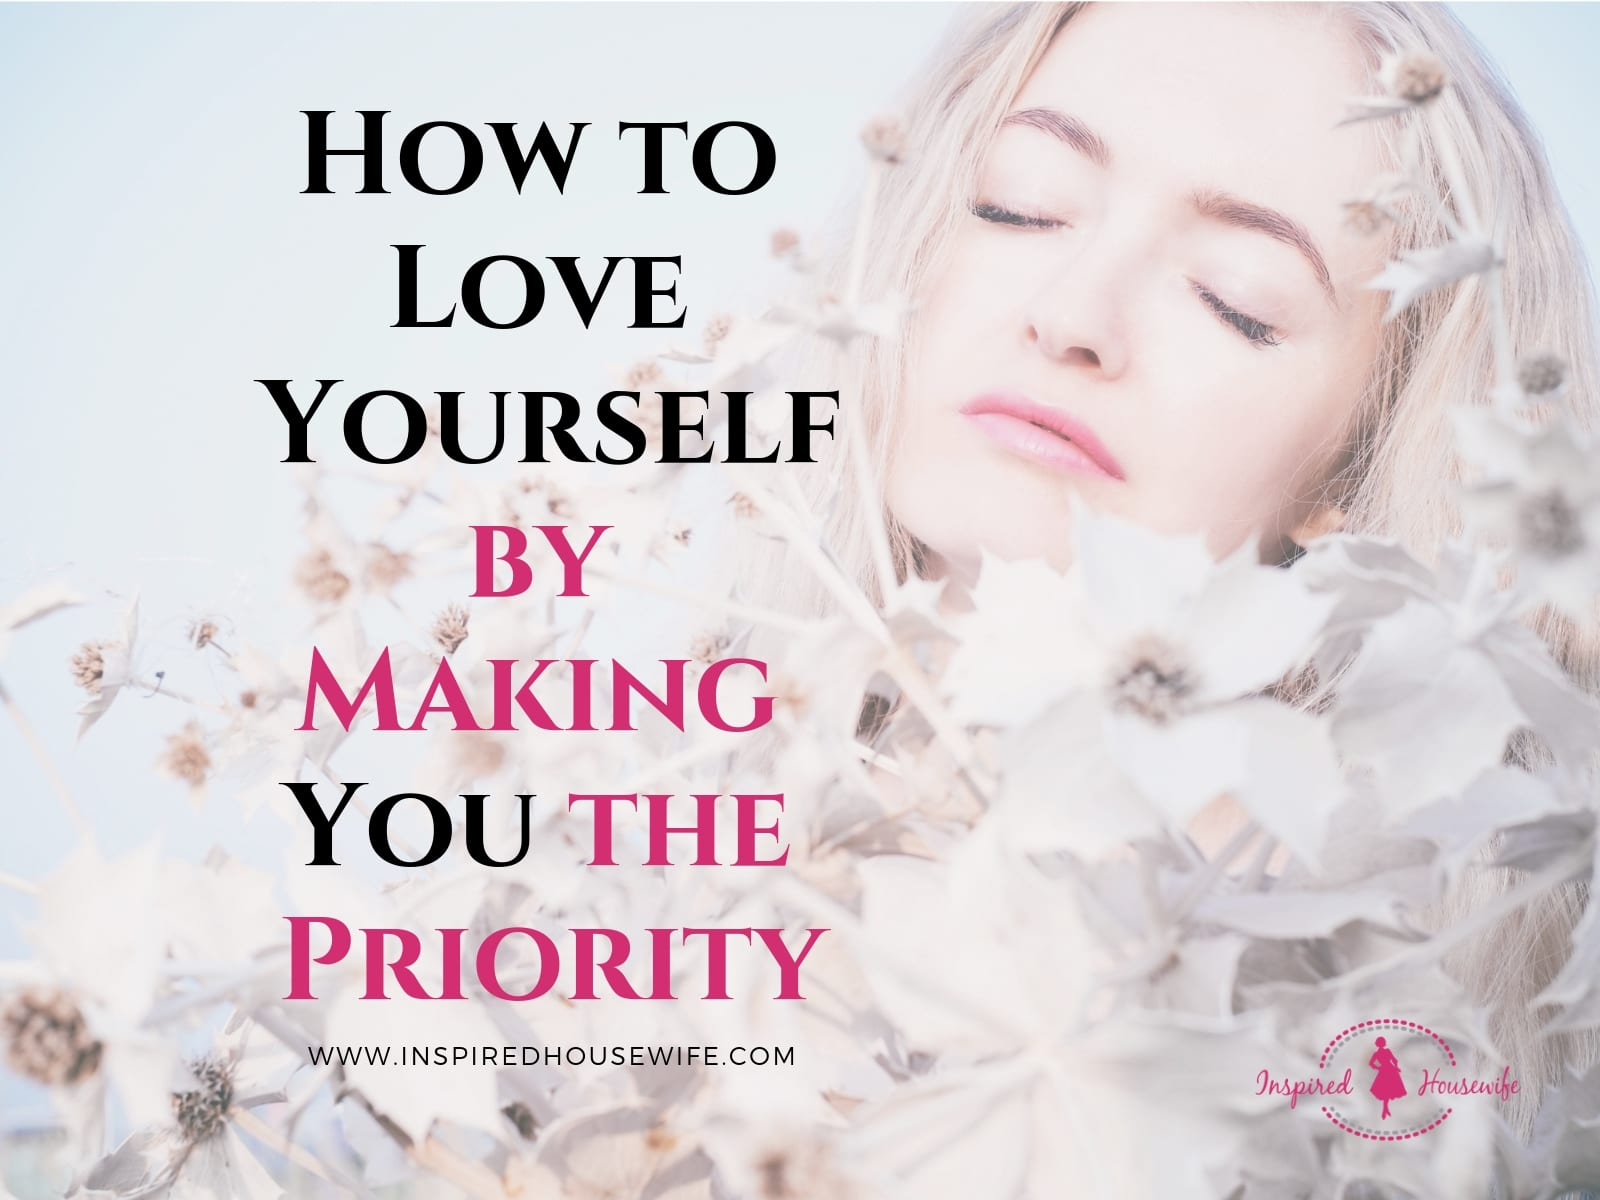 How to Love Yourself by Making You the Priority